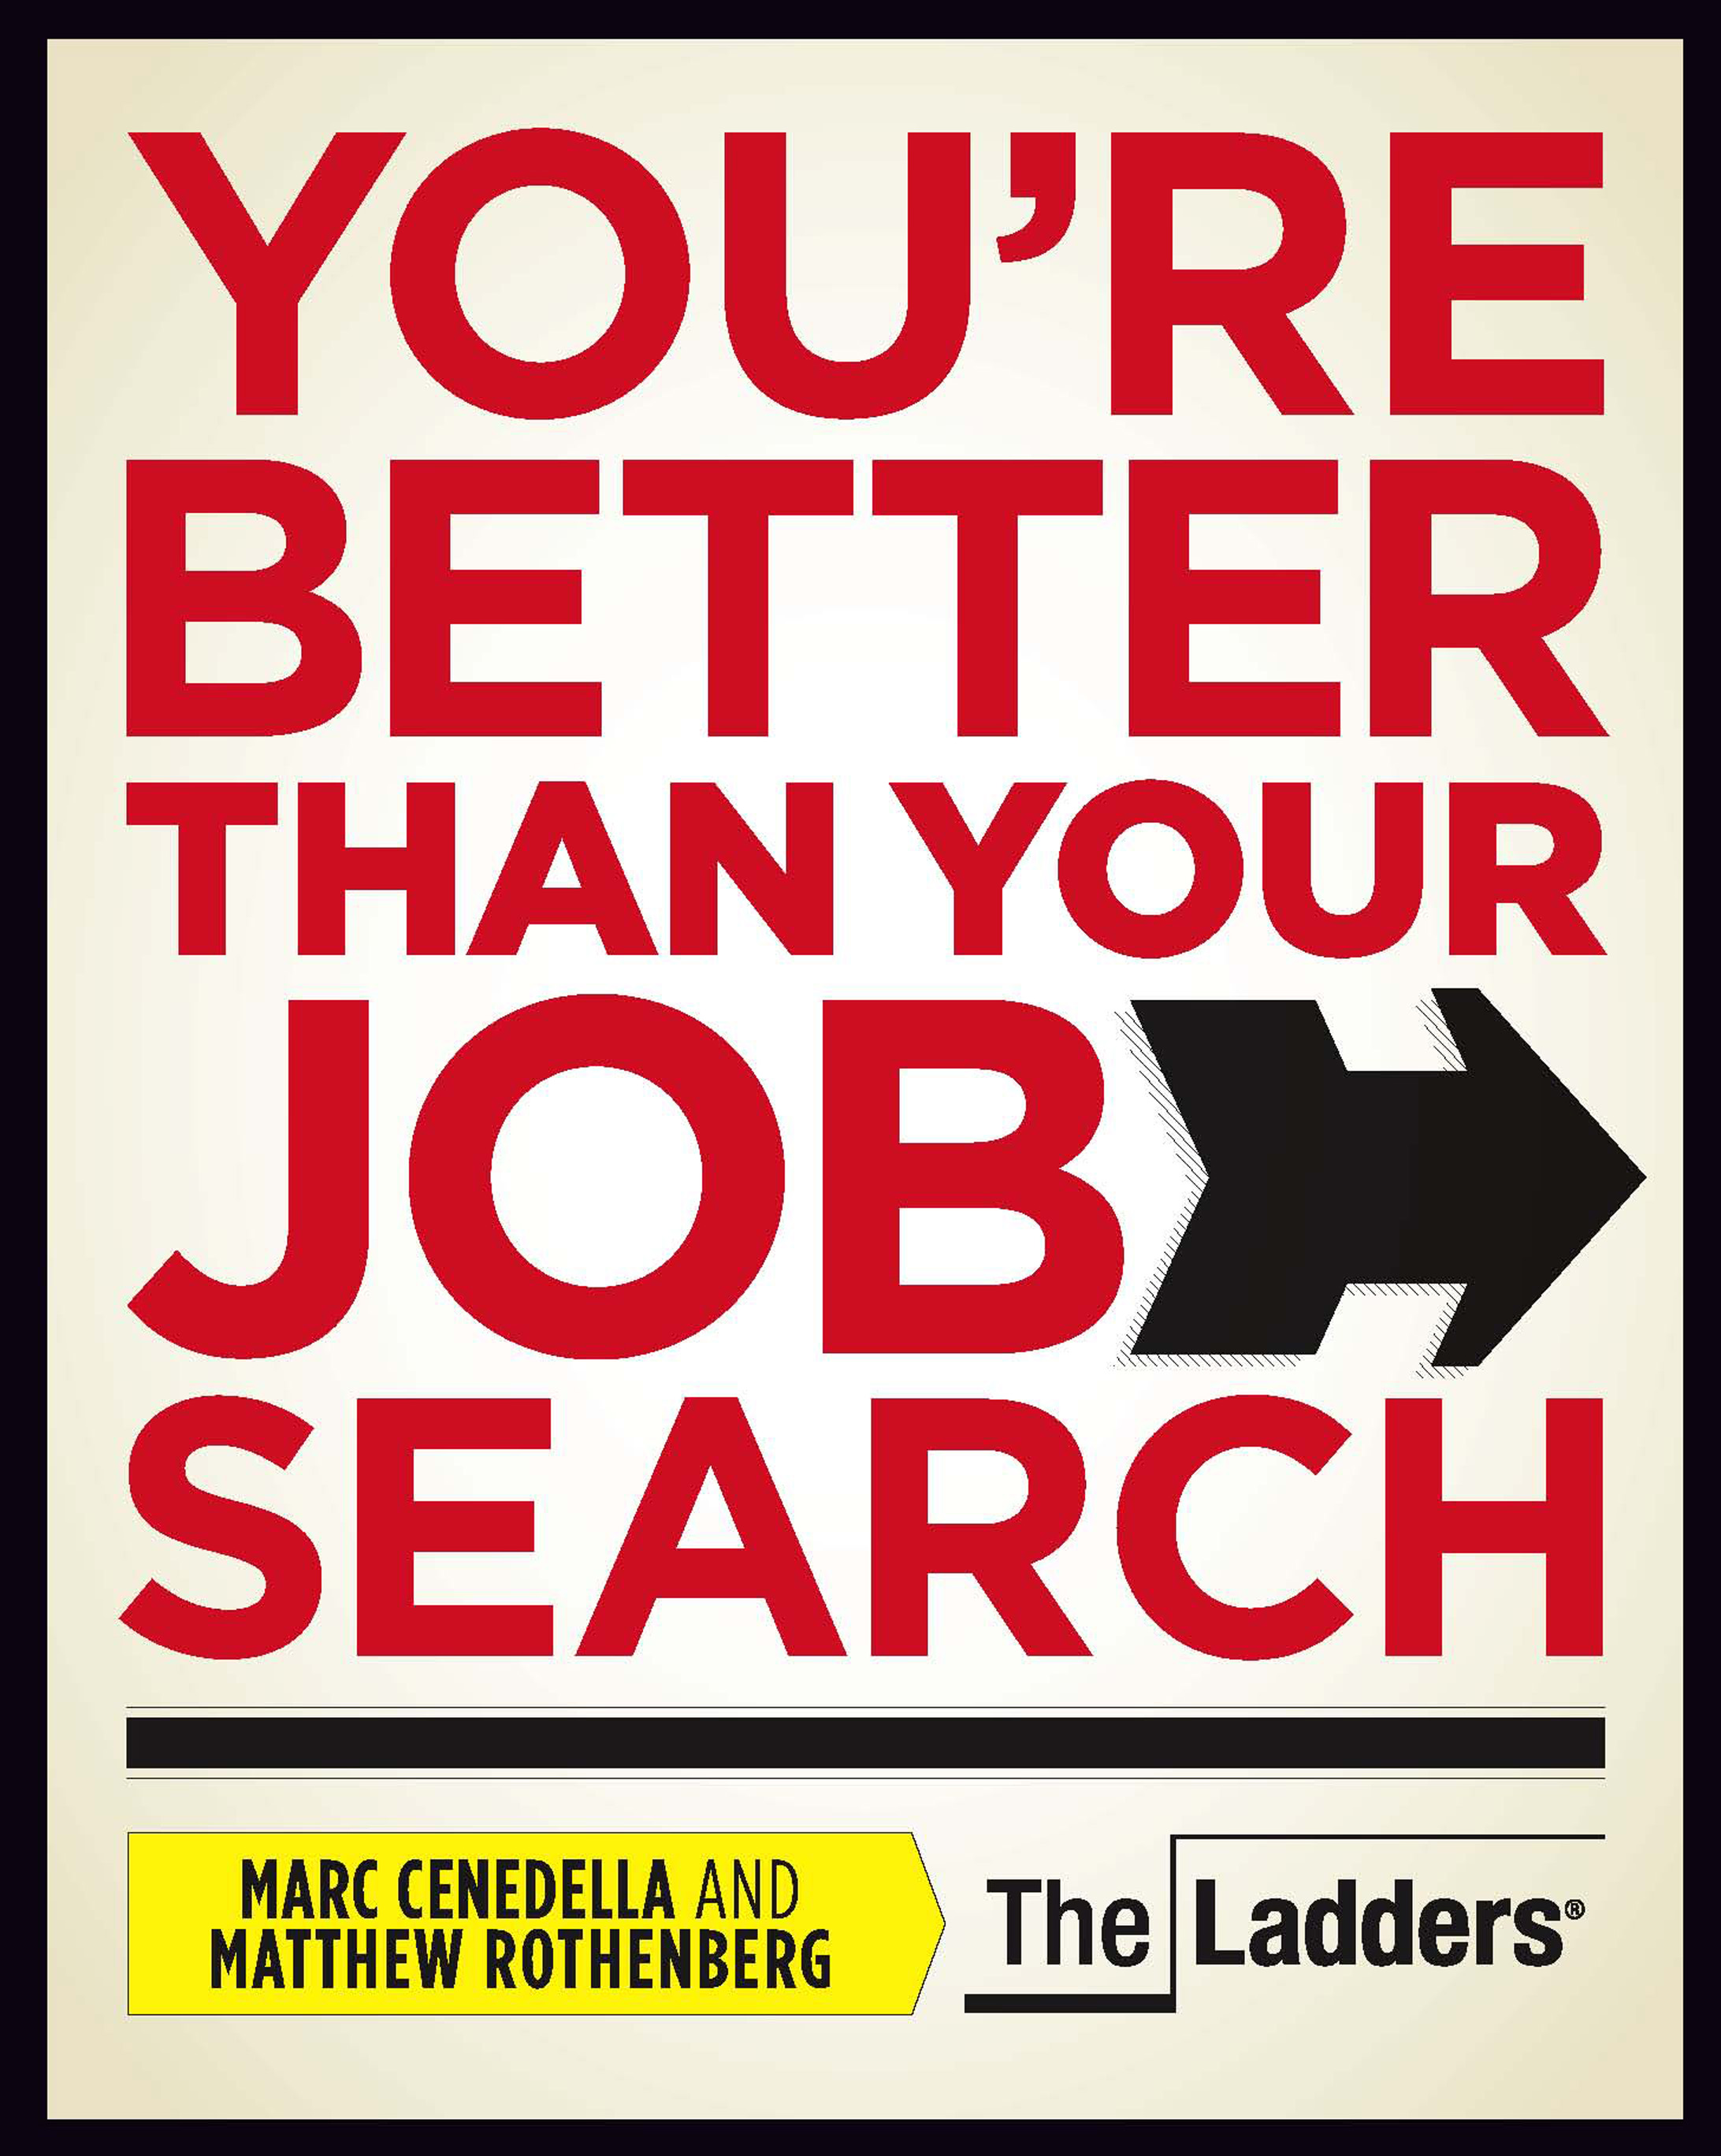 you re better than your job search book by marc cenedella book cover image jpg you re better than your job search